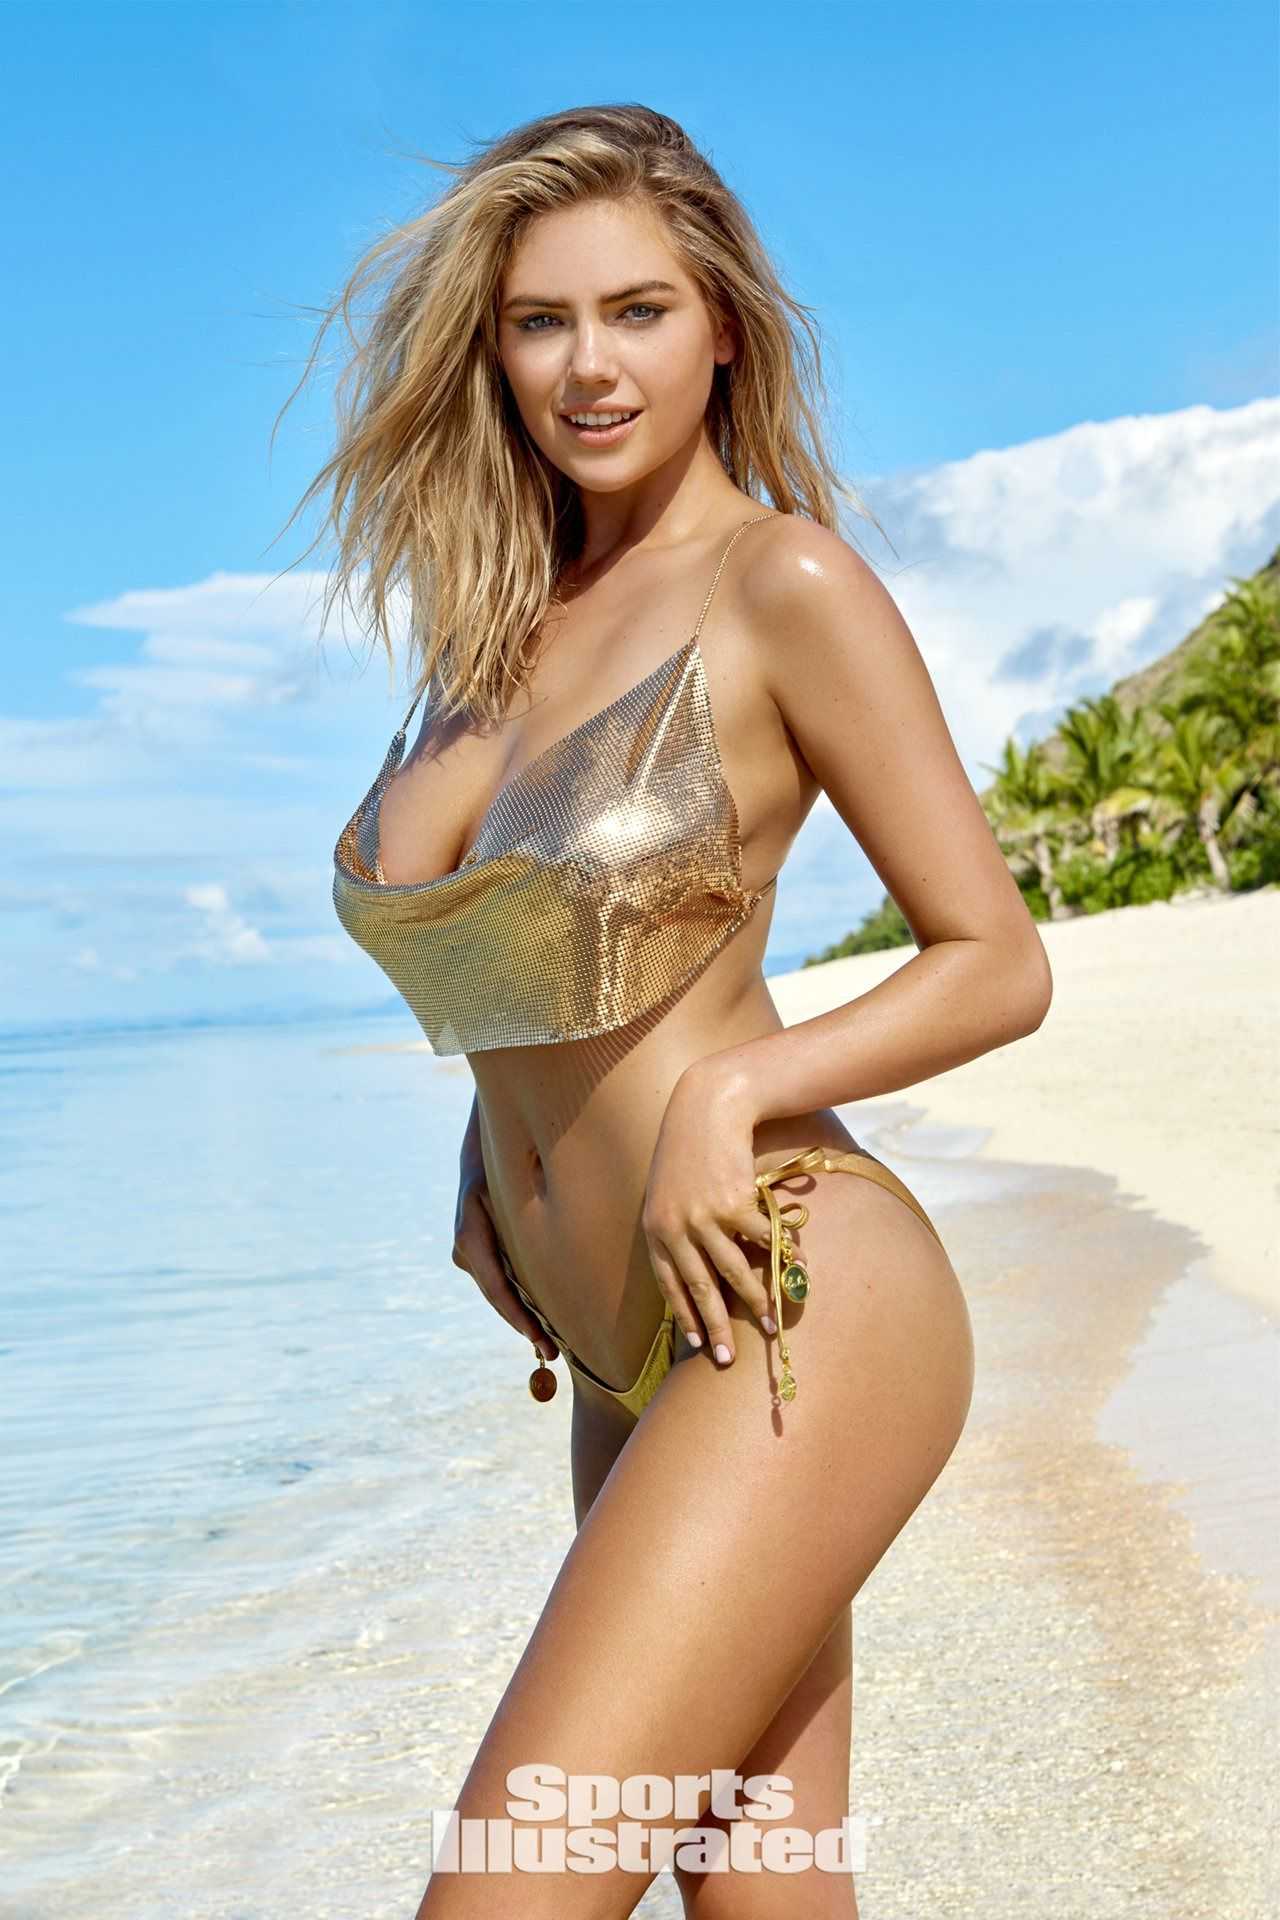 Image Result For Irina Shayk Wallpaper Hannah Ferguson Outtakes Si Swimsuit Si Swimsuit